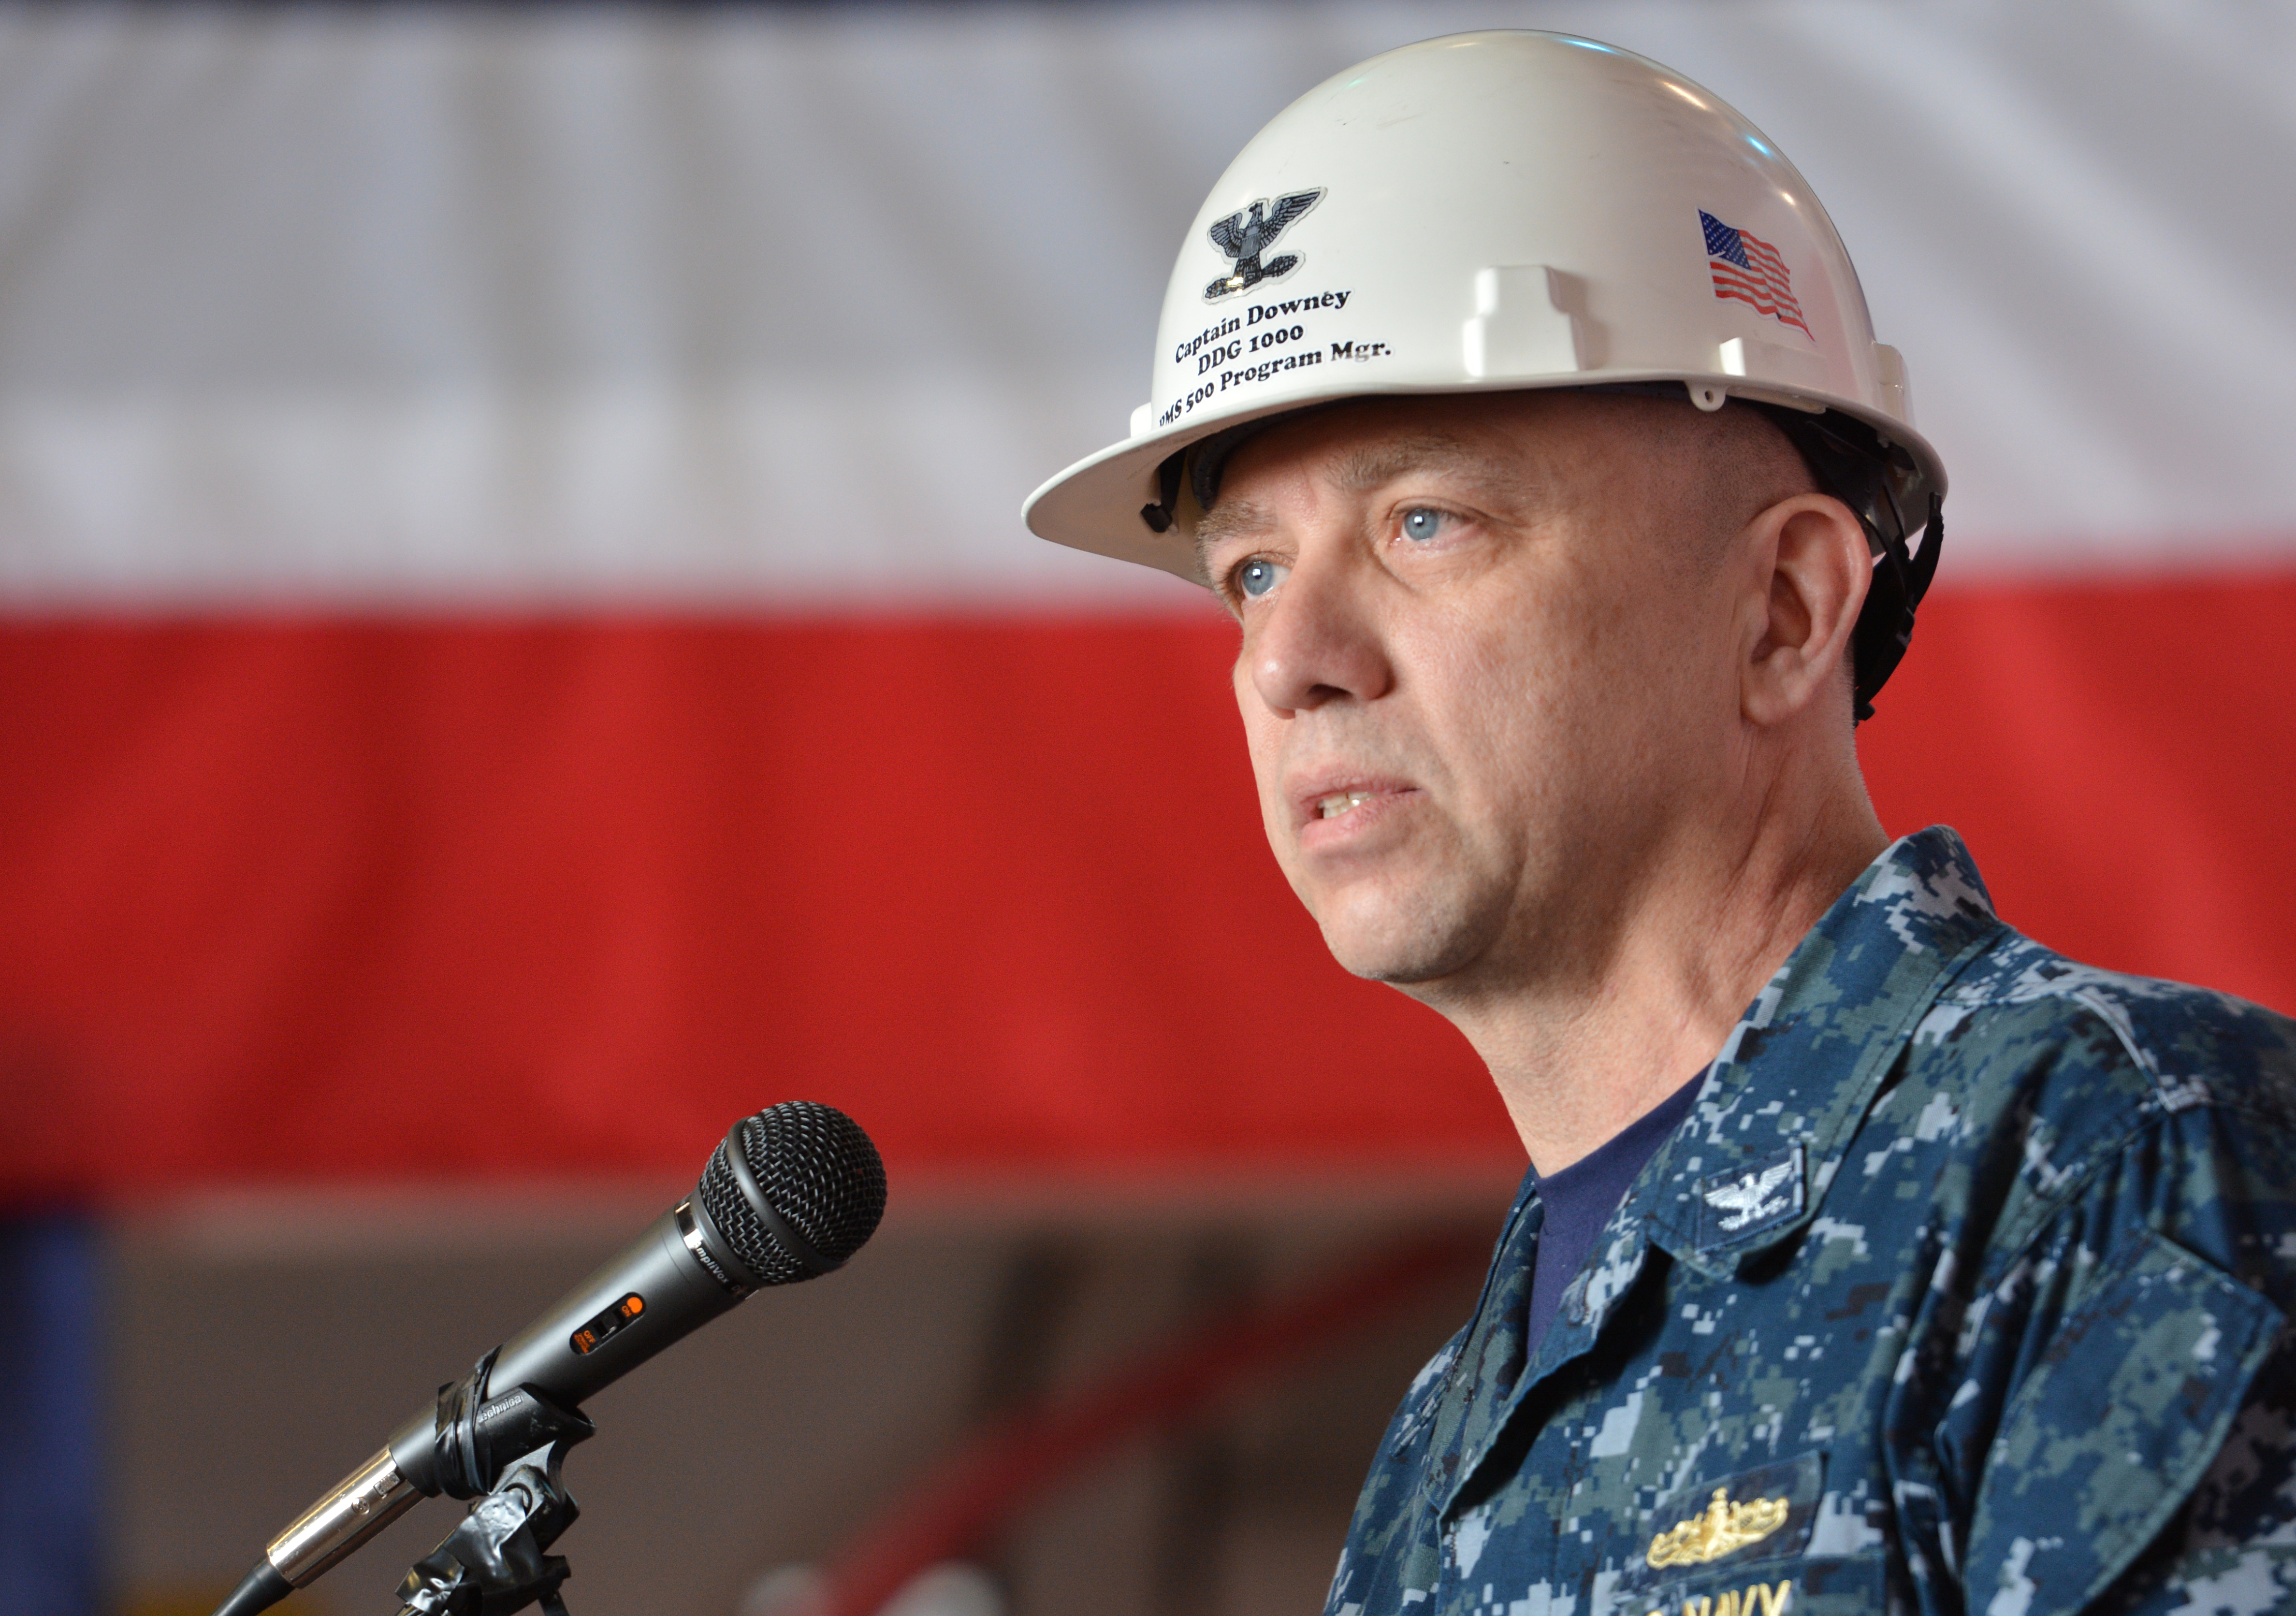 Capt. James Downey, then-DDG 1000 program manager, speaks to assembled crew and guests in the hangar bay aboard the future guided-missile destroyer USS Zumwalt (DDG 1000) following a transfer of ownership ceremony on May 20, 2016. US Navy photo.